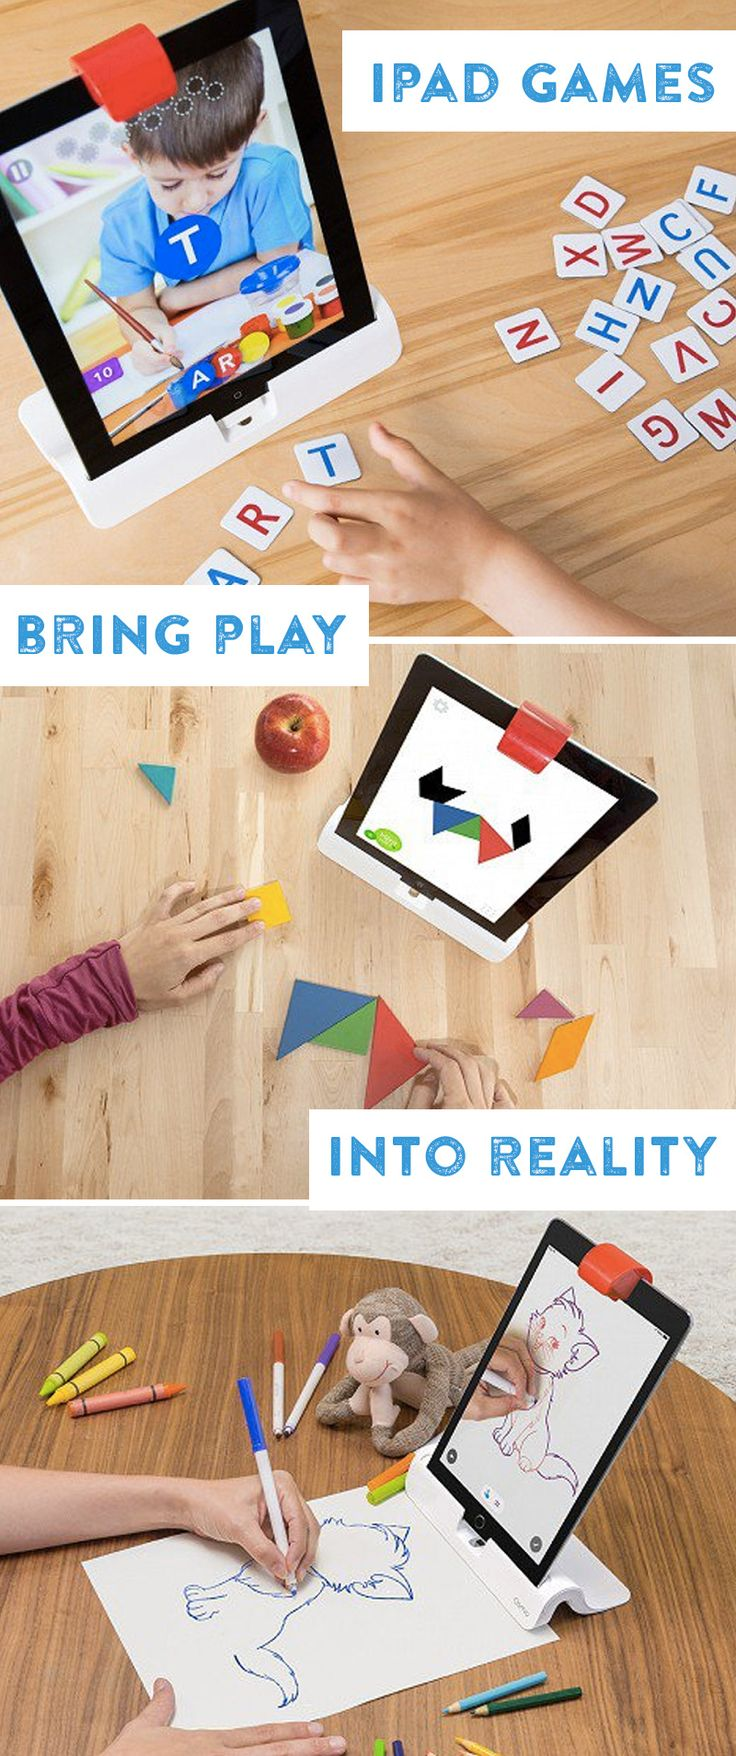 Osmo is a groundbreaking, award-winning way to integrate the iPad and the physical world—it gives kids a more tangible way to learn and play. Osmo sees what's happening in front of it via a special reflector that you place over your iPad's camera. Using free apps and some physical game pieces, Osmo takes digital learning beyond the screen.